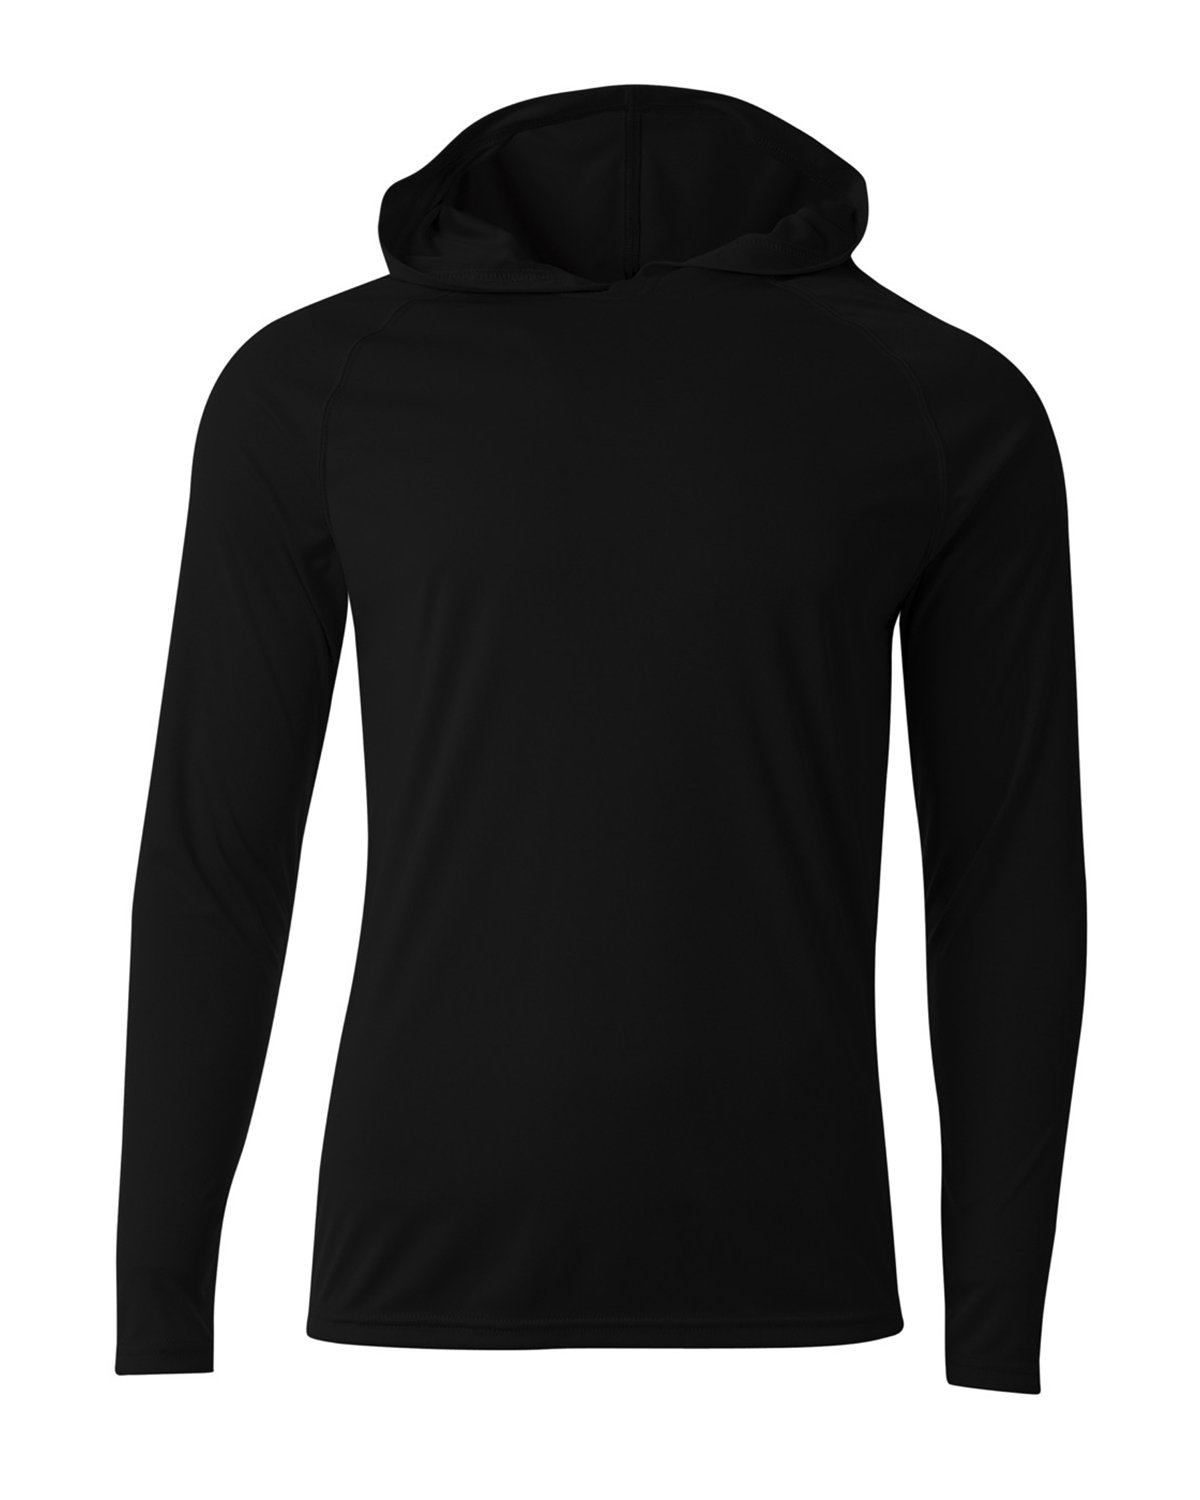 A4 Men's Cooling Performance Long-Sleeve Hooded T-shirt BLACK